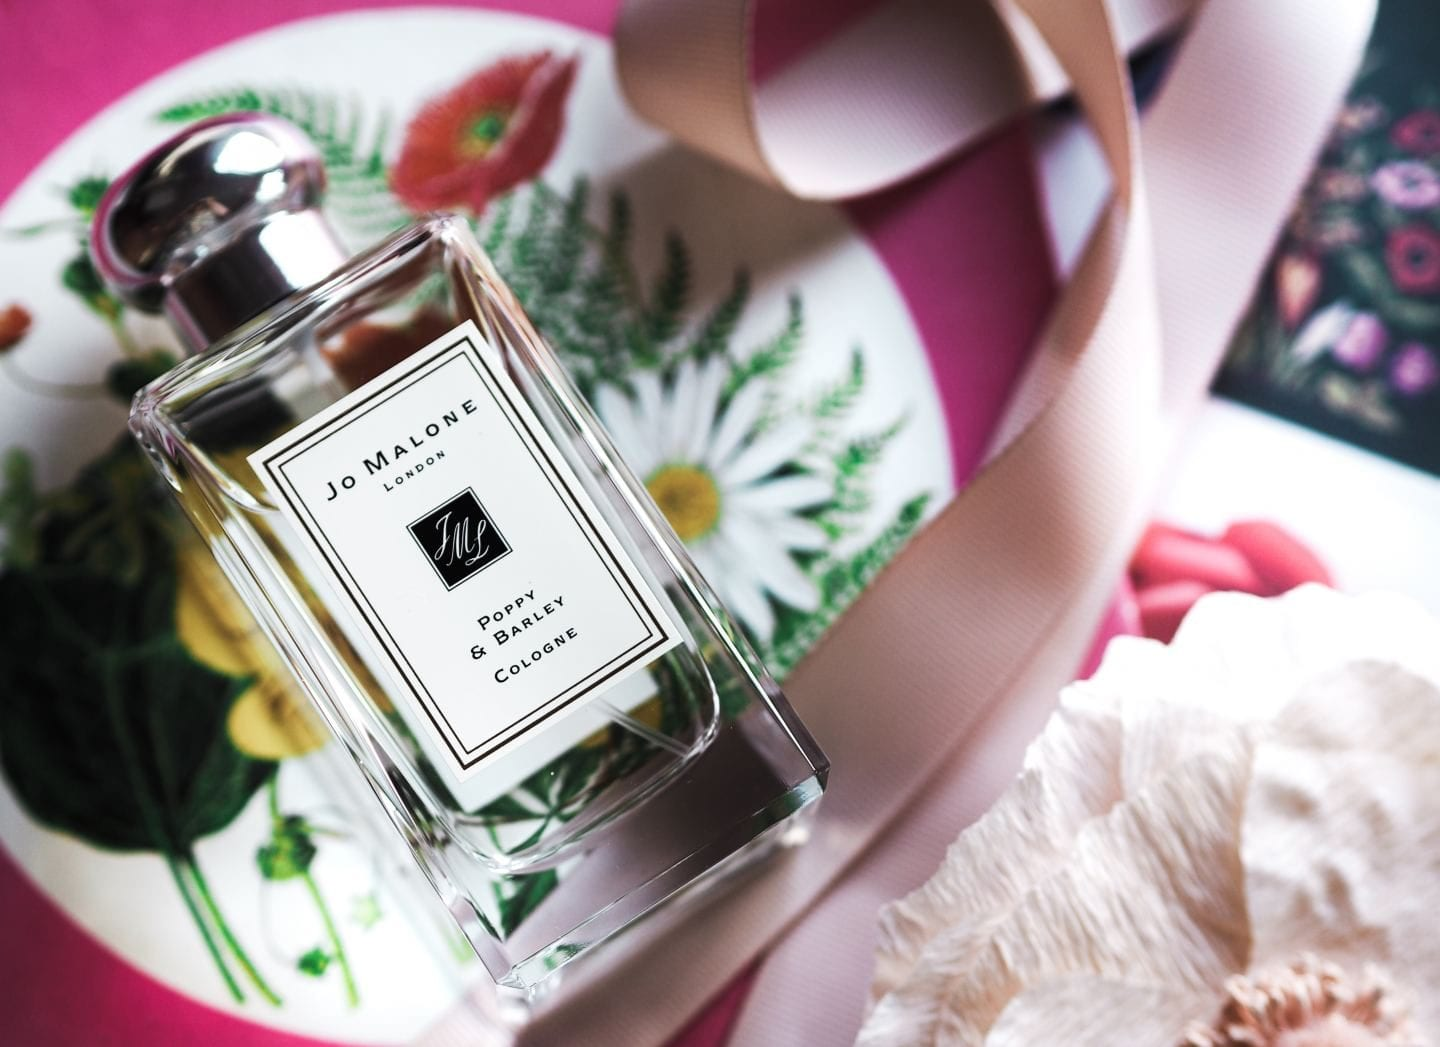 Jo Malone London 'Poppy & Barley' Is BACK! perfume fragrance 2019 review new launch